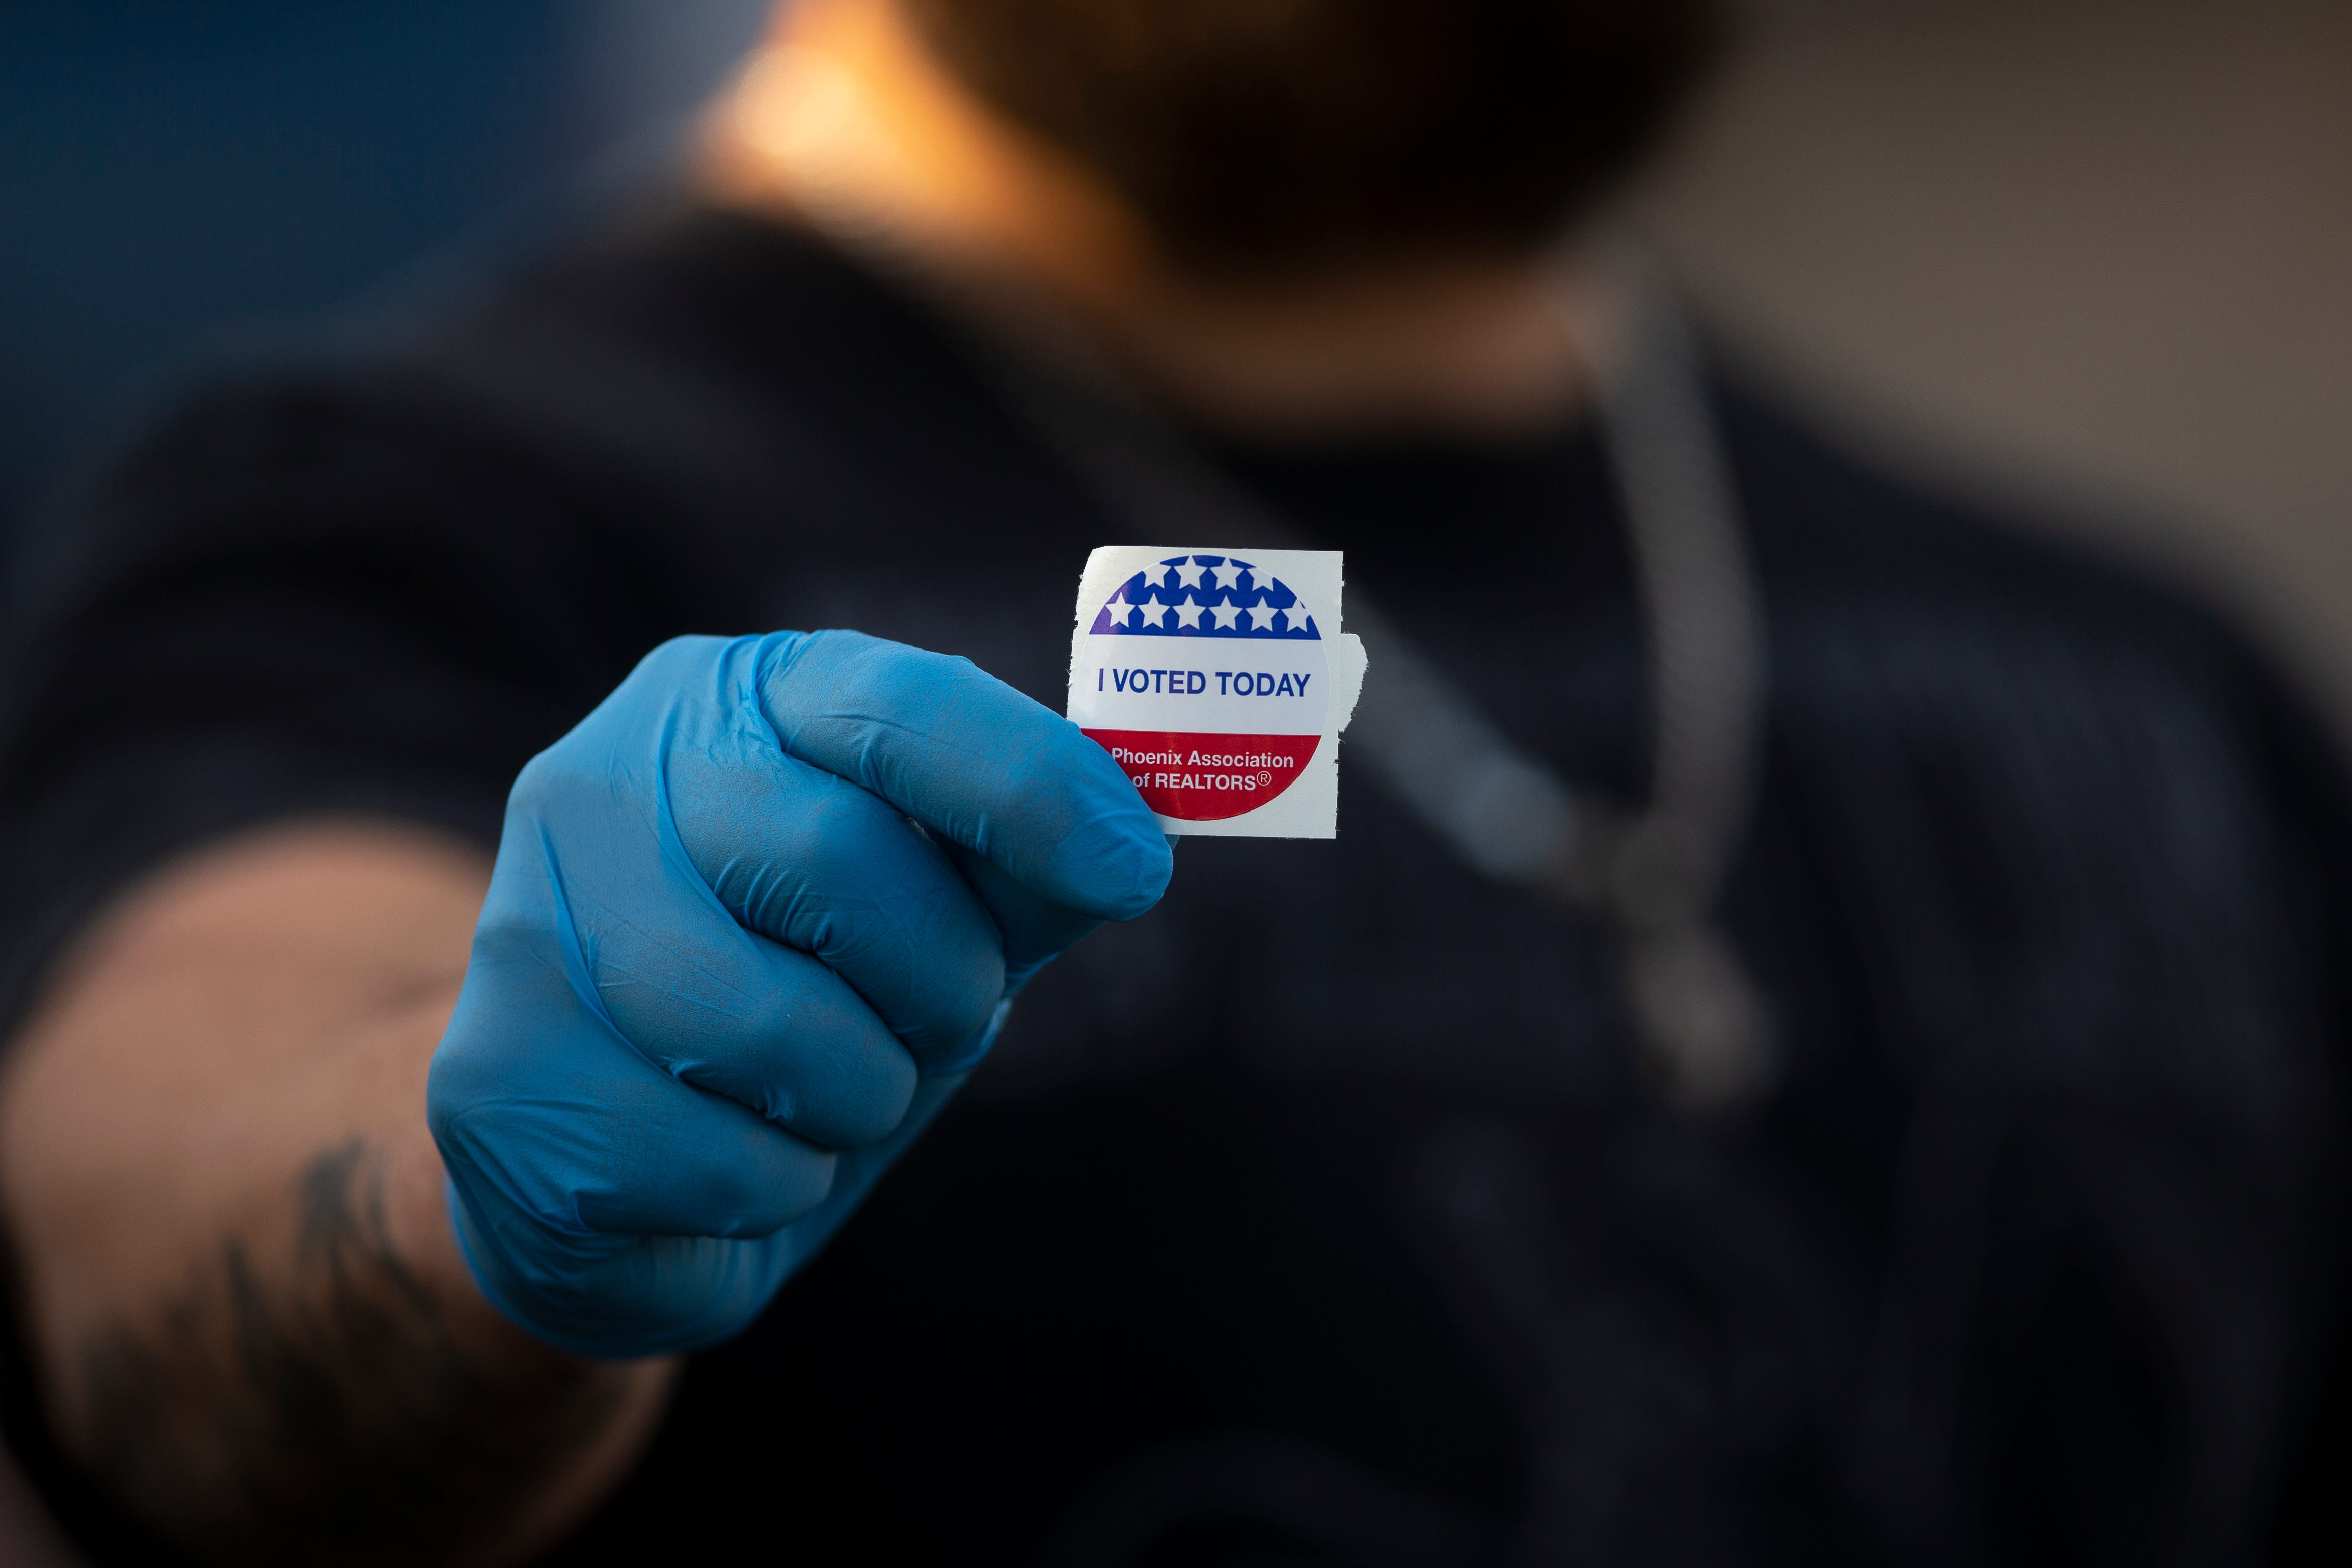 An Arizona voter holds a sticker showing he voted in the Democratic Primary election at the Burton Barr Central Library in Phoenix on March 17.